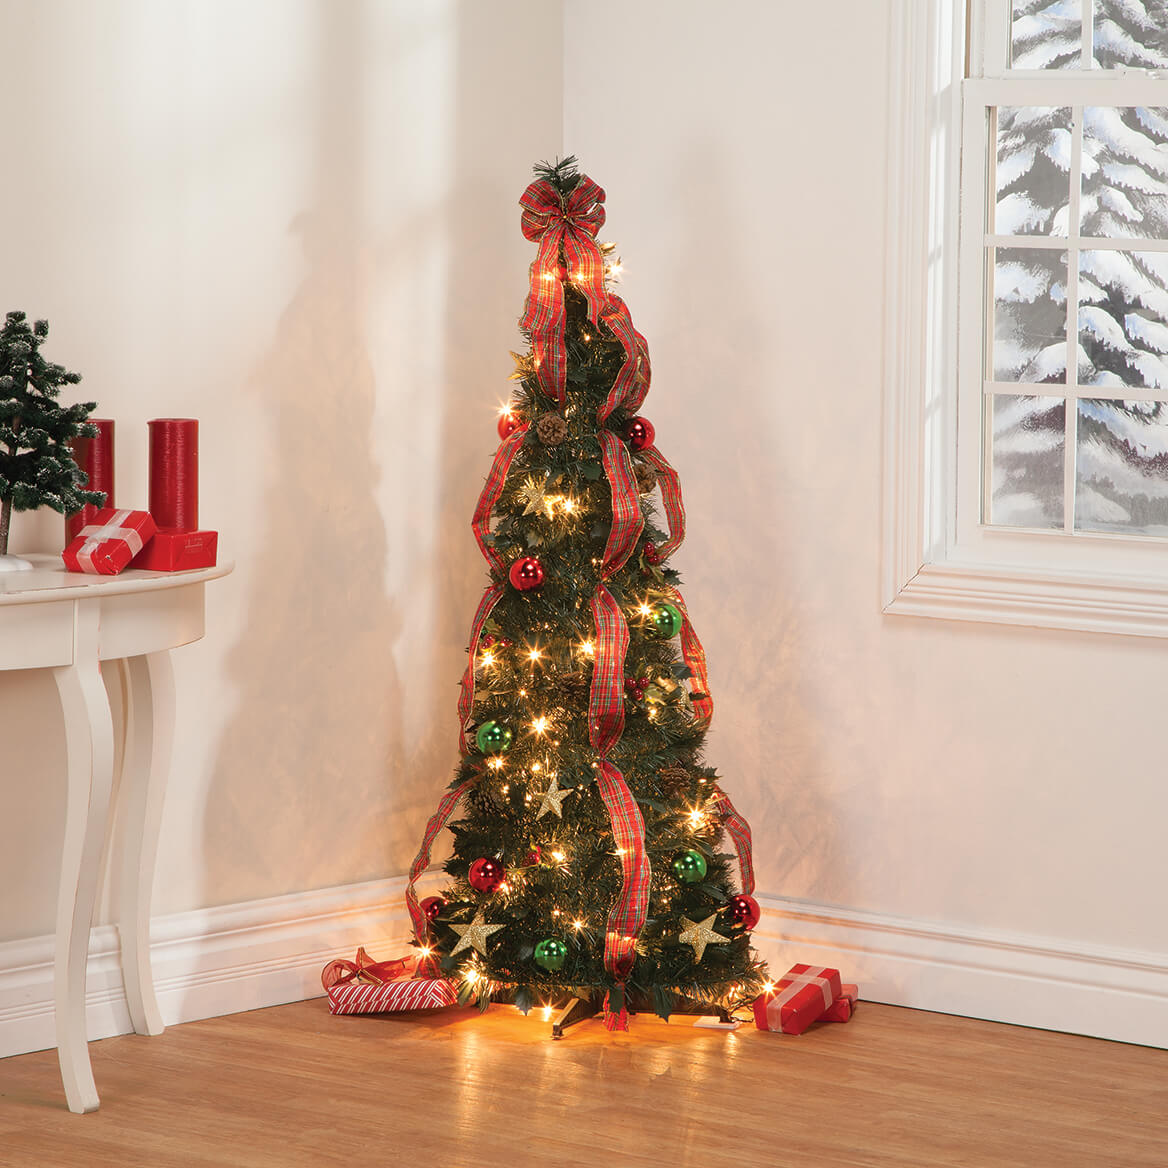 Holiday Peak Pull-Up Christmas Tree, Pre-Lit and Fully Decorated, 4', 4 Foot, 4 840853177791 | eBay